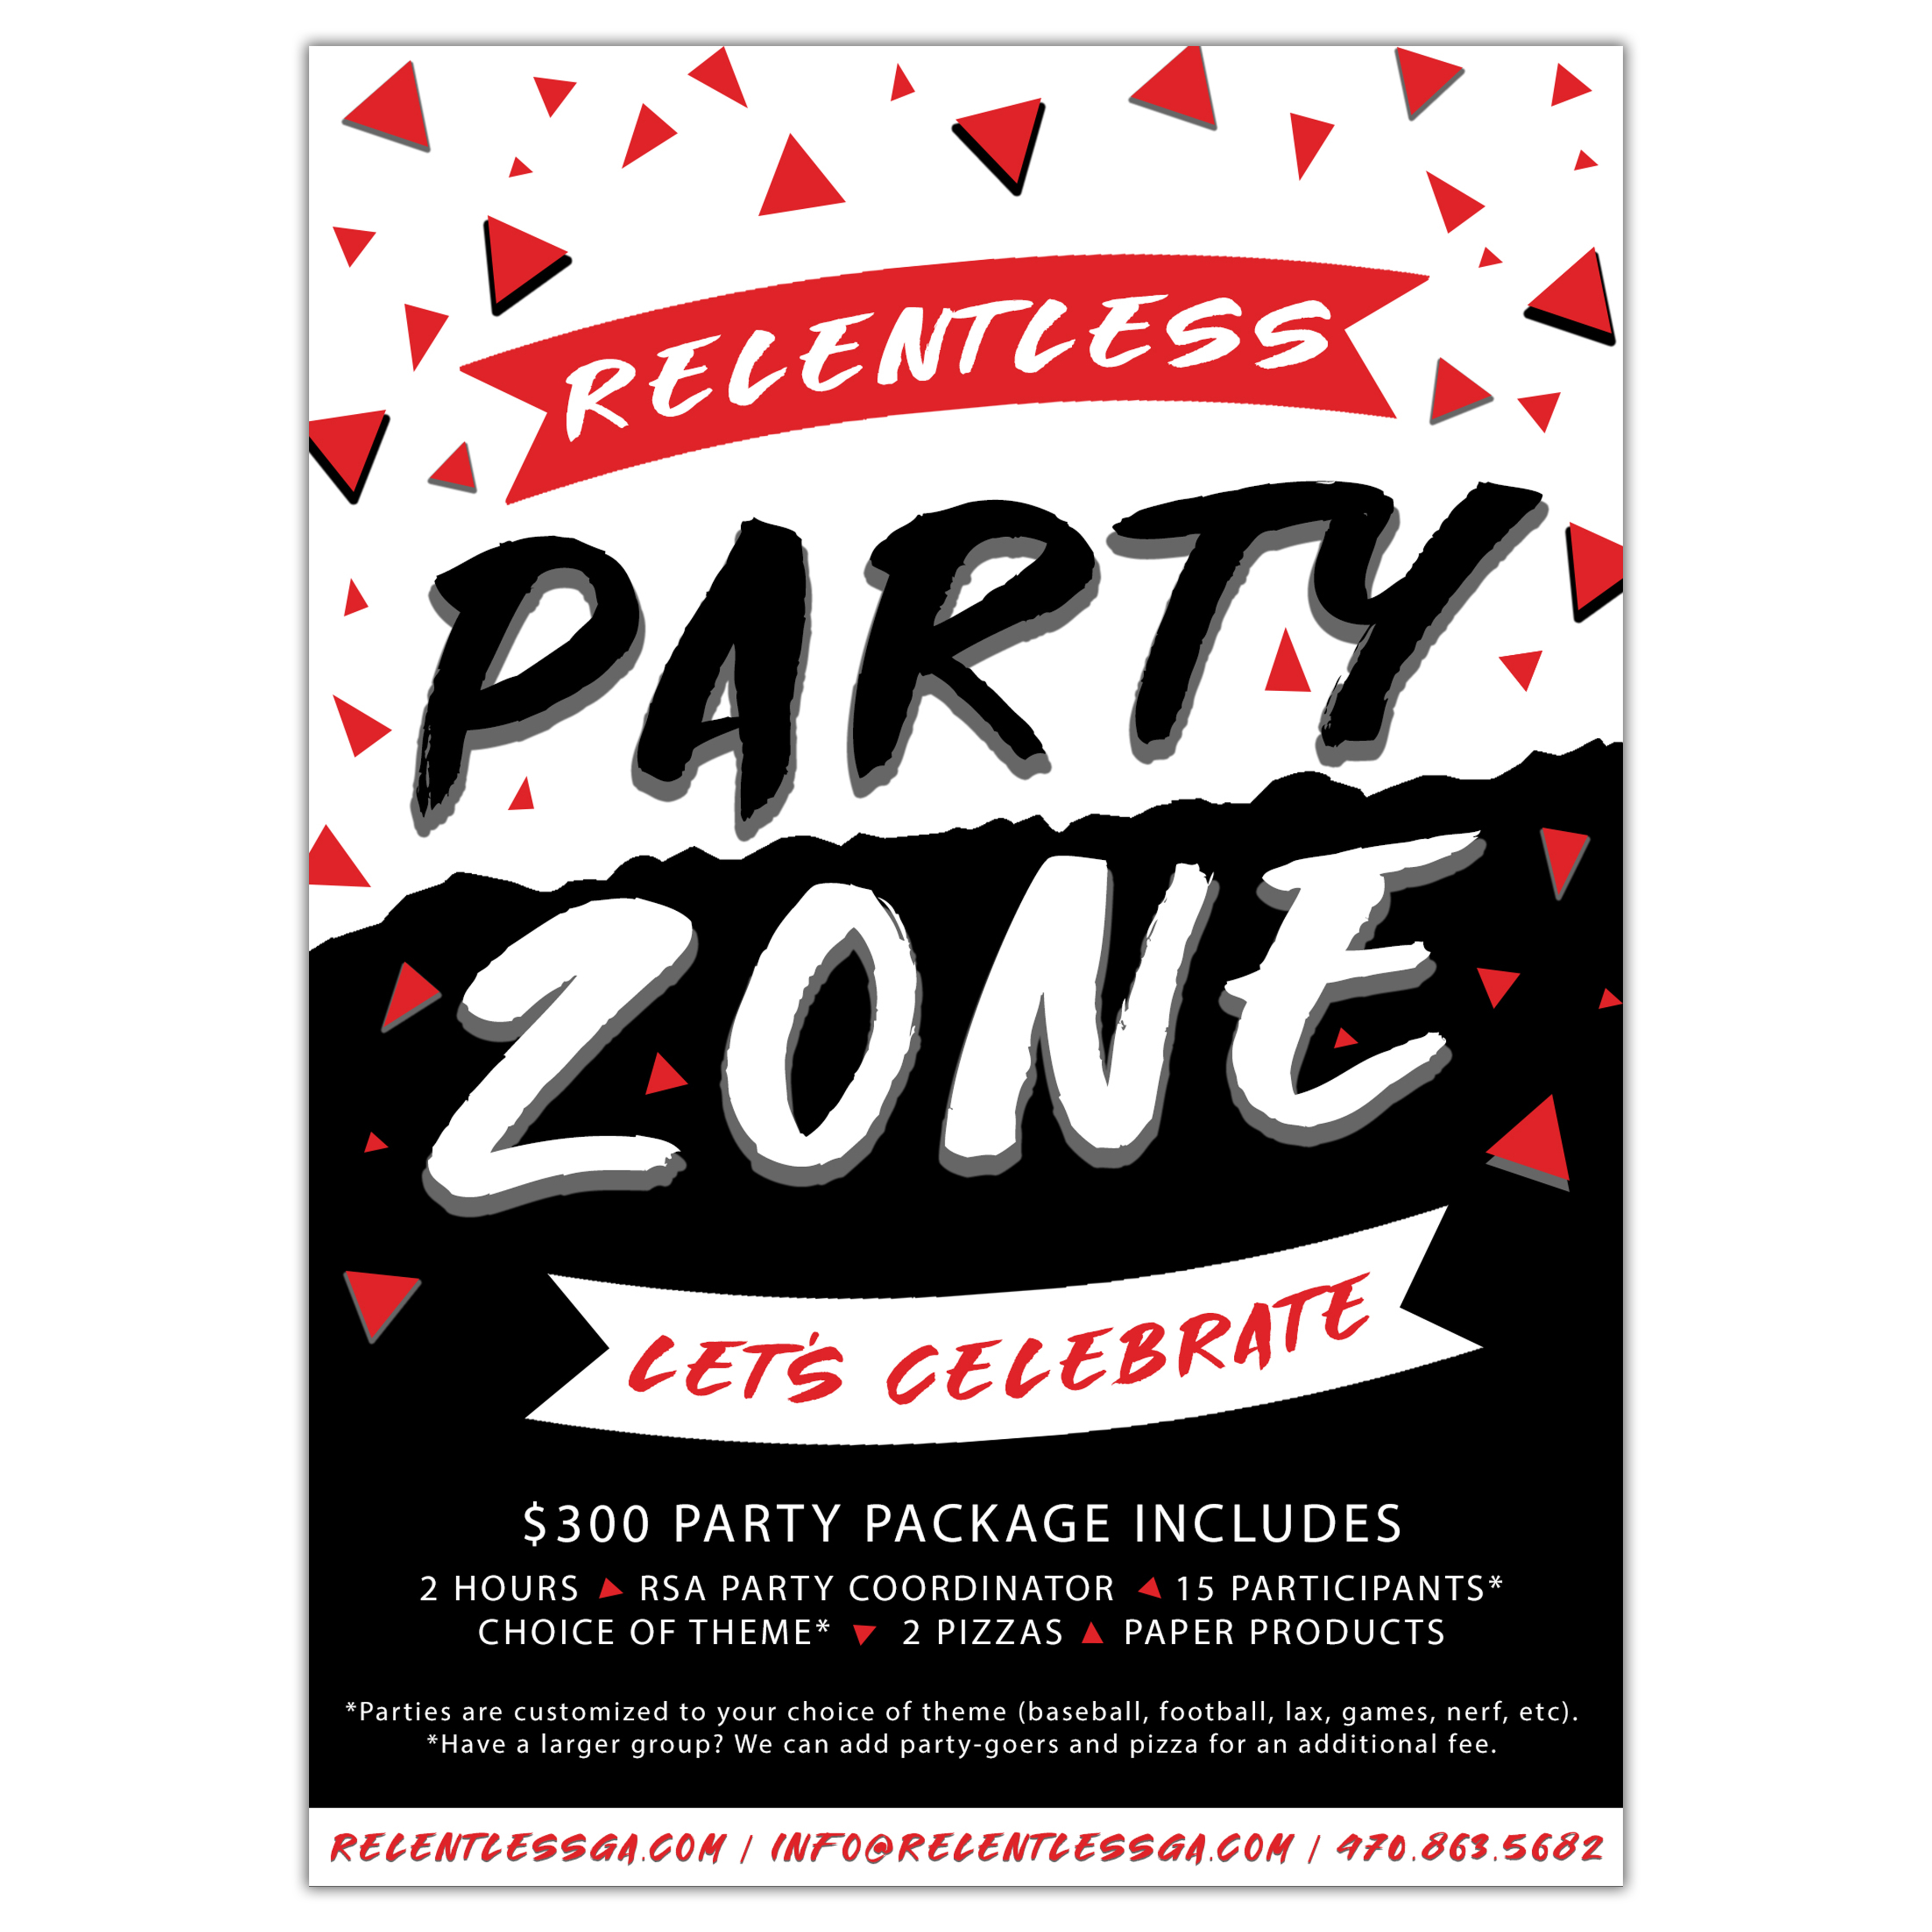 RSA Party Zone IG Post